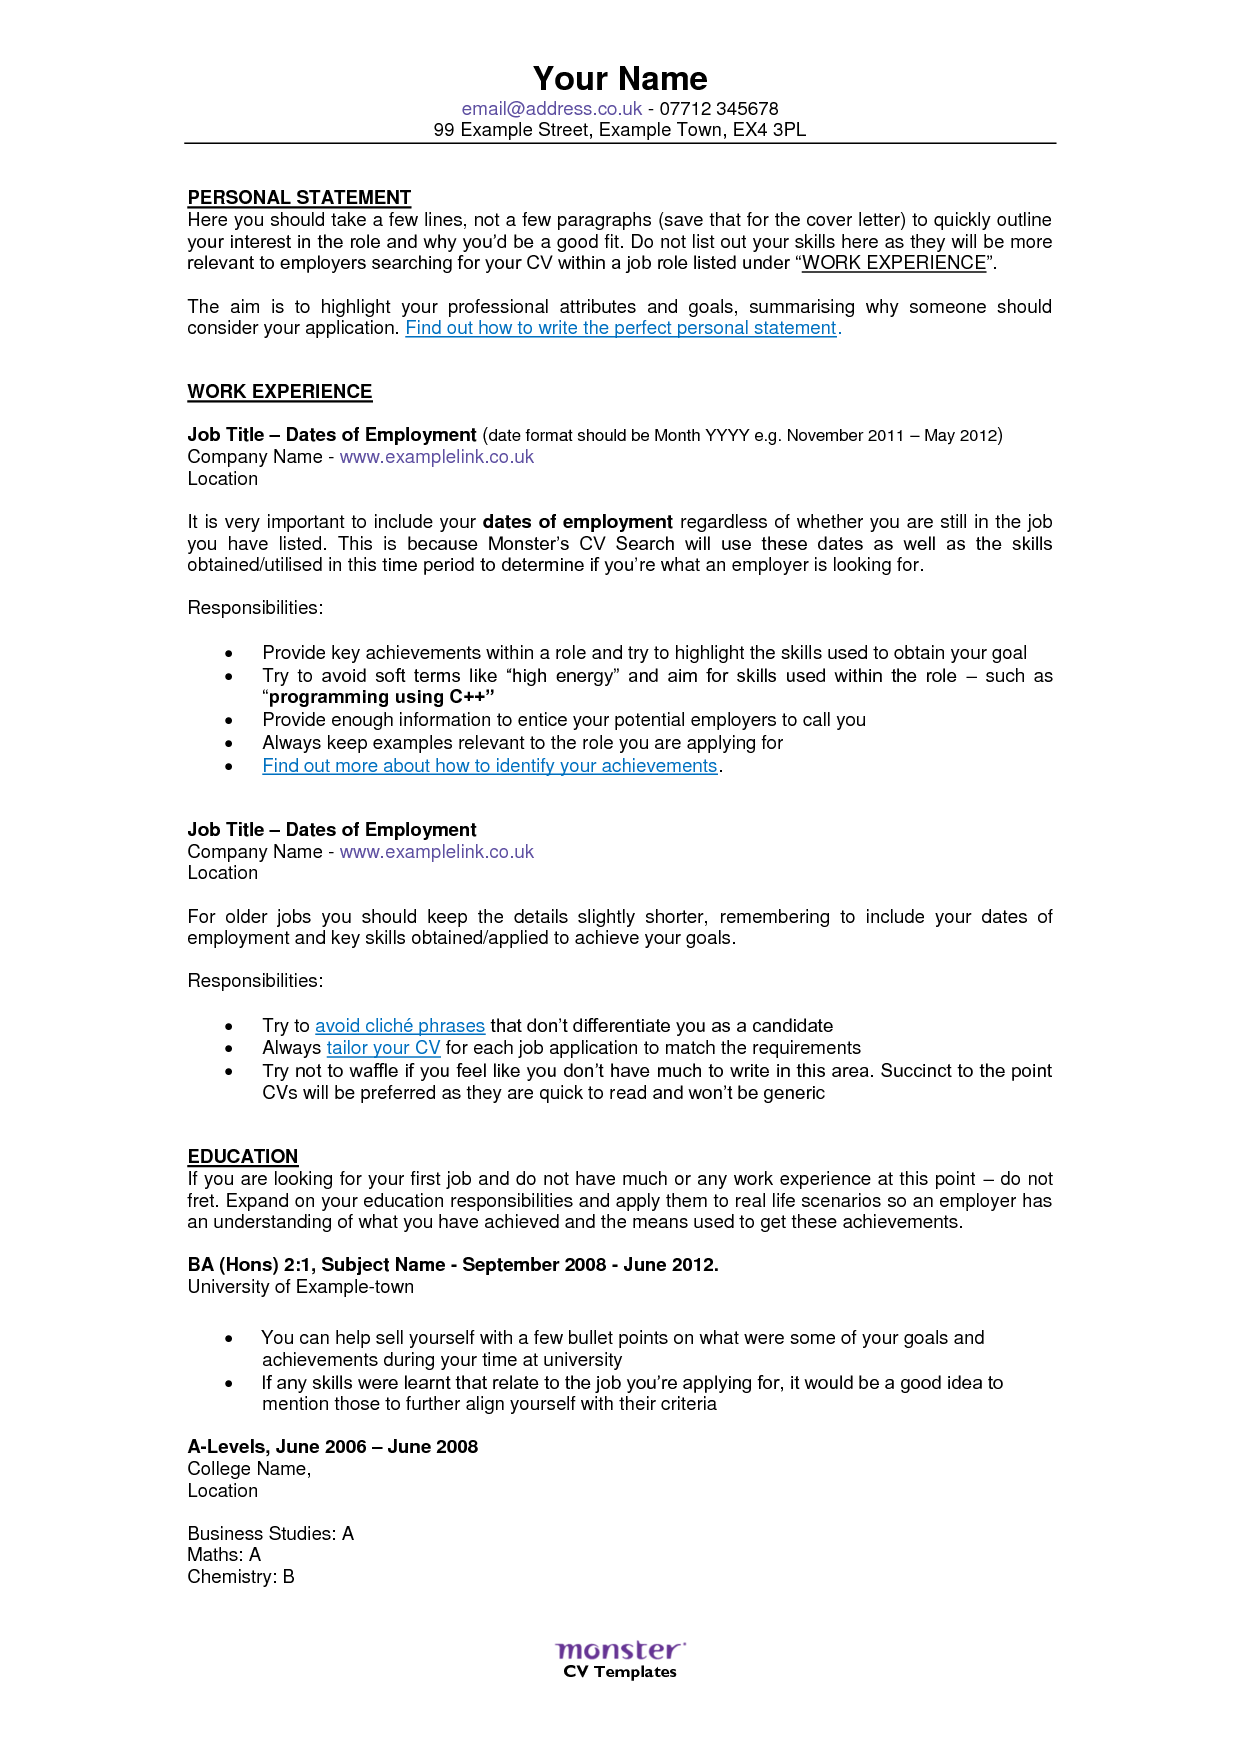 Resume Templates Monster Resume Templates Resume Skills Job Cover Letter Resume Examples